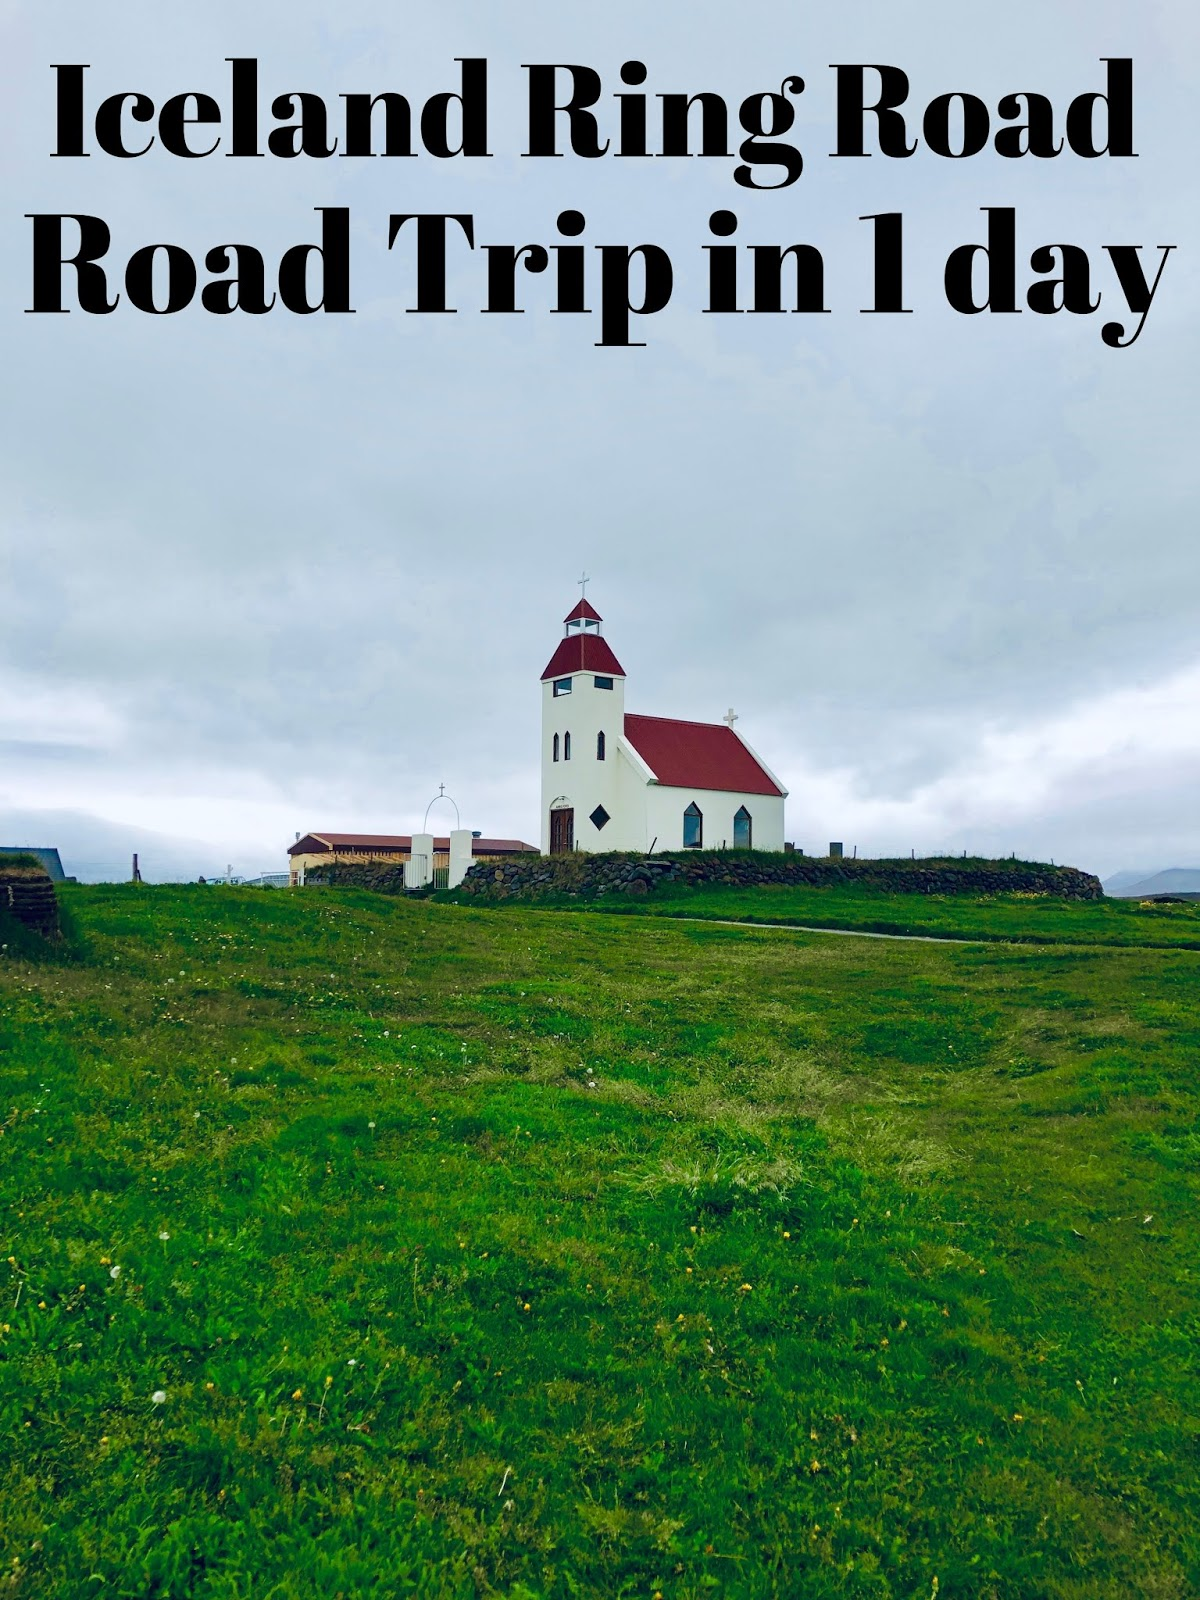 1 day trip around iceland, driving around the whole island of iceland, how to do the ring road in iceland, how to do the ring road in iceland in 1 day, ring road iceland,